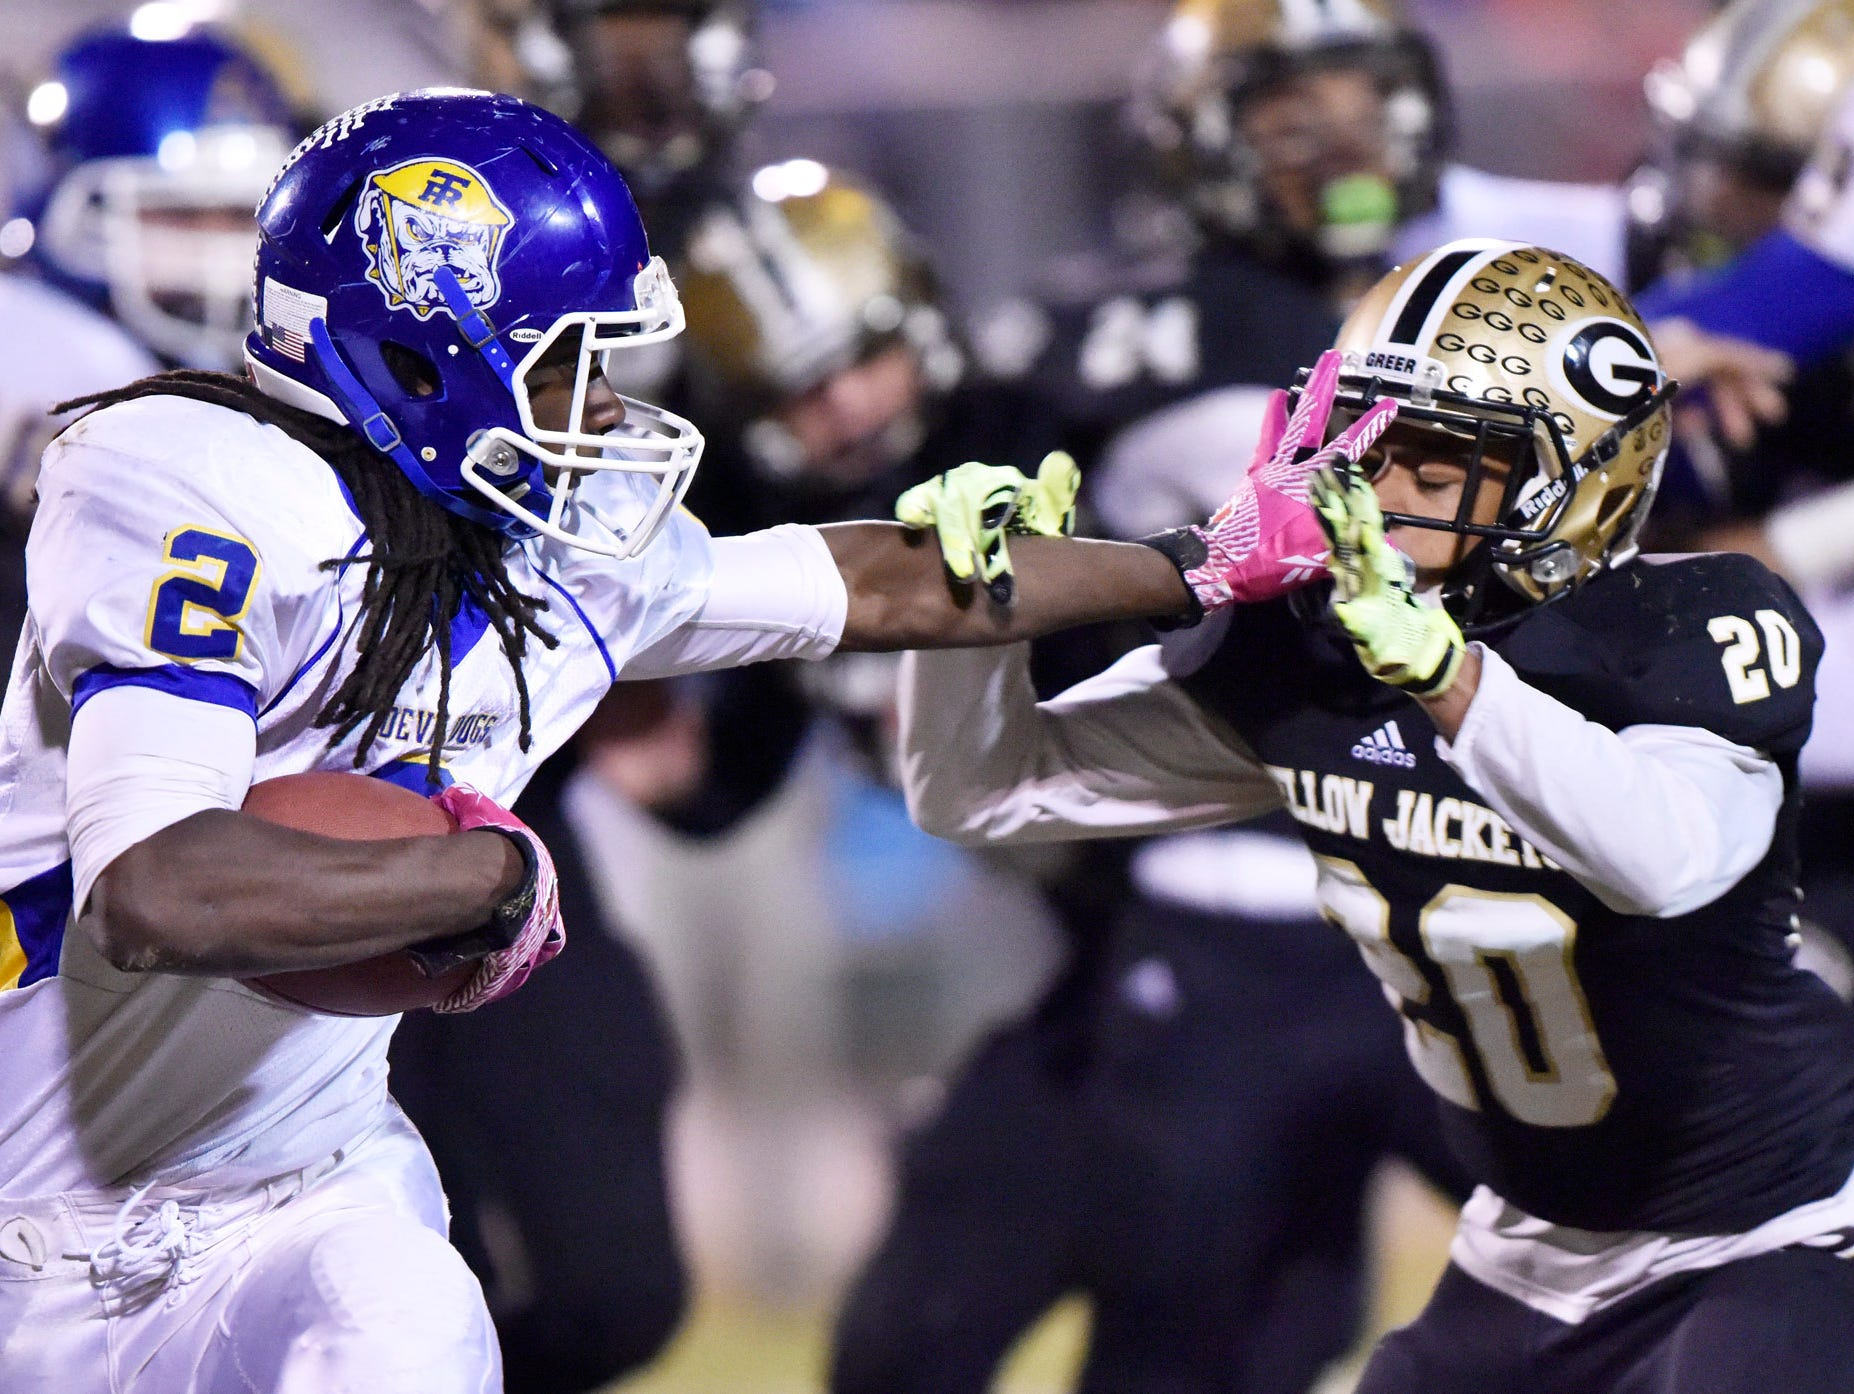 Travelers Rest's Xaiver Terry (2) fends off Greer's D.J. Sitton (20).